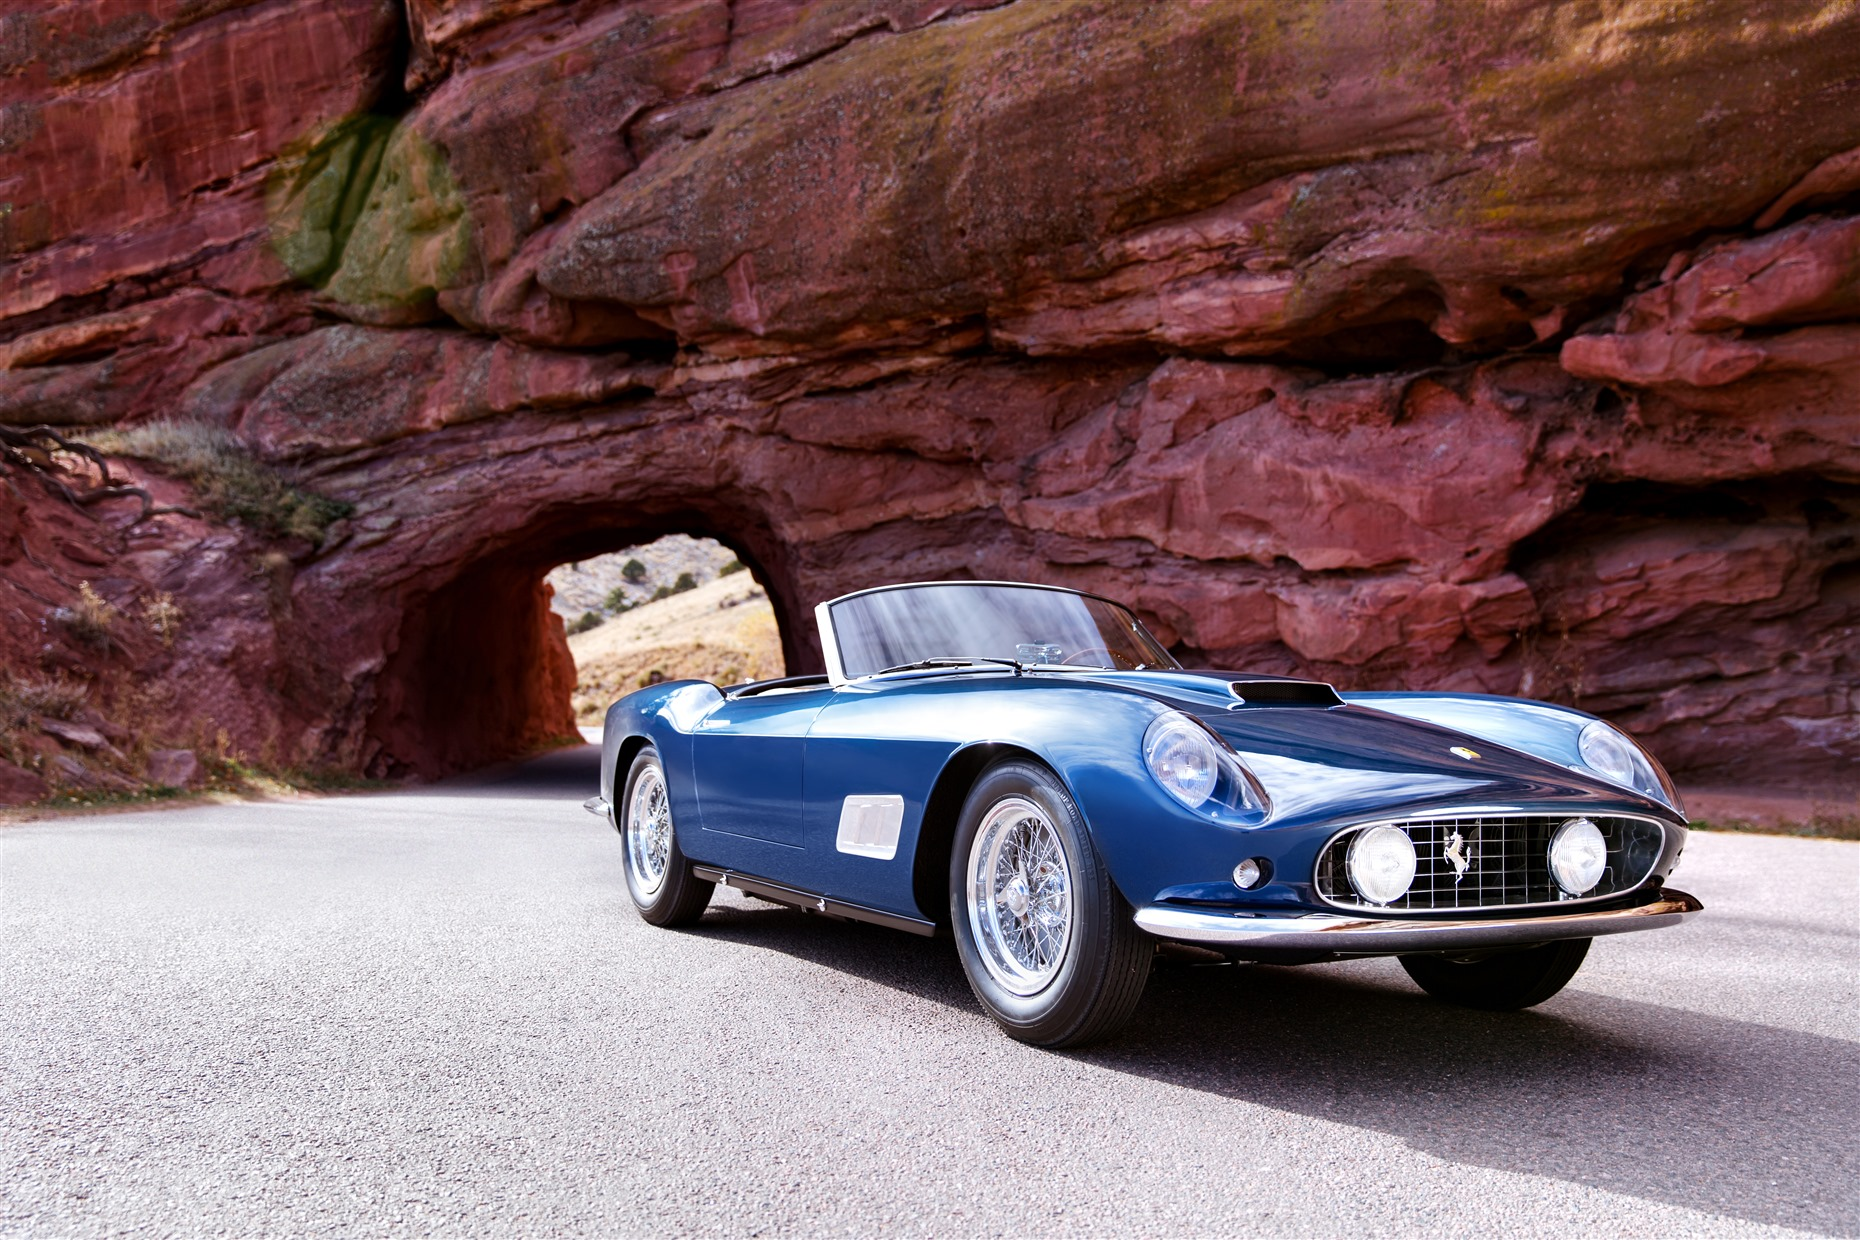 Mike Maez | Mike Maez Photography | 1958 Ferrari 250 GT LWB California Spider